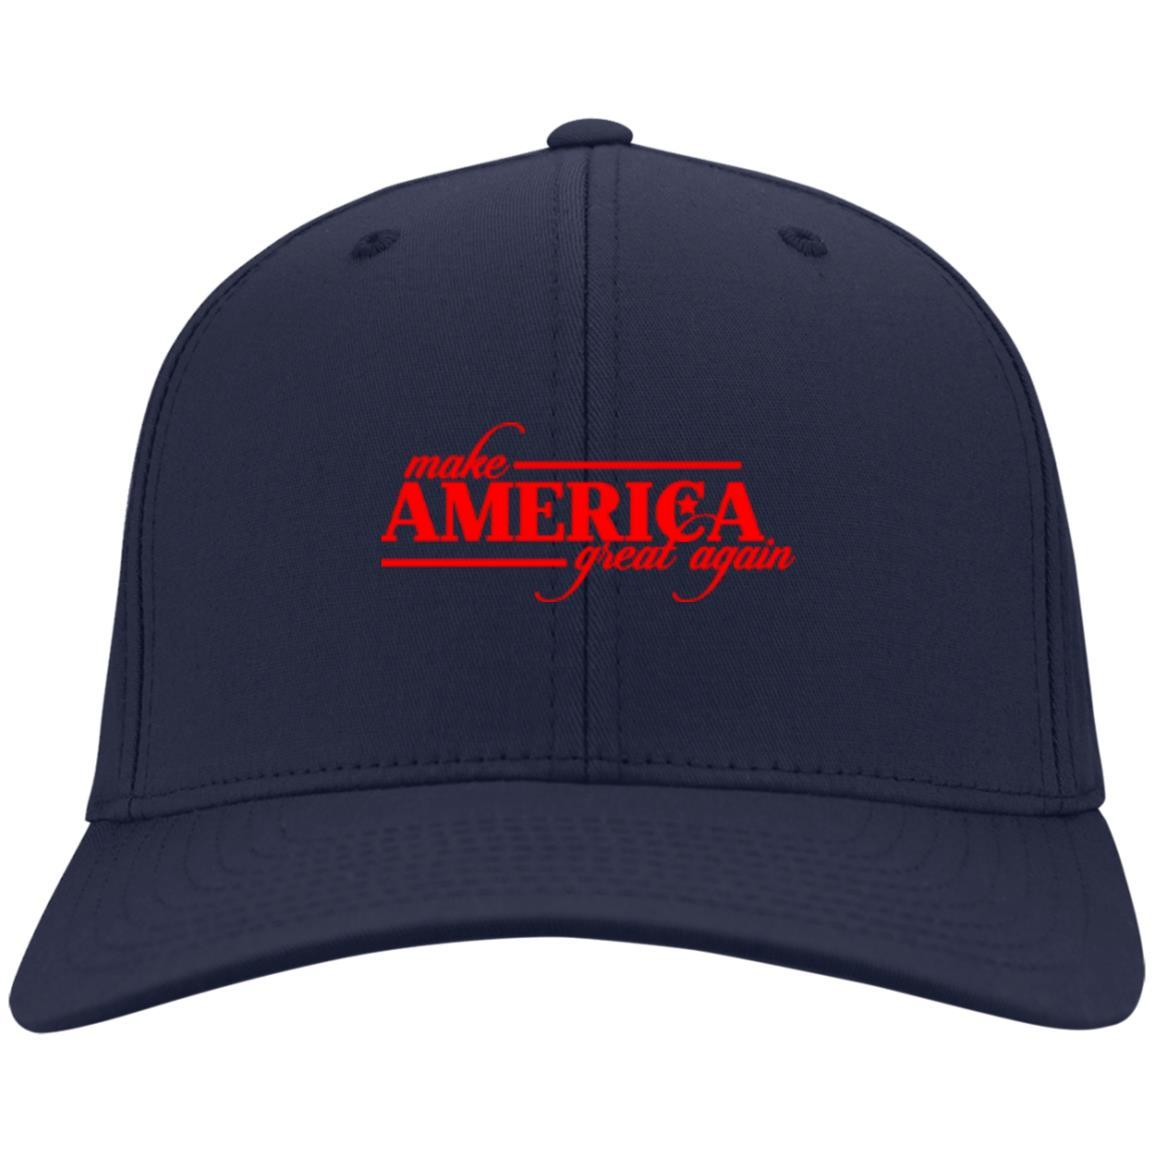 Make America Great Again - Port & Co. Twill Cap Navy